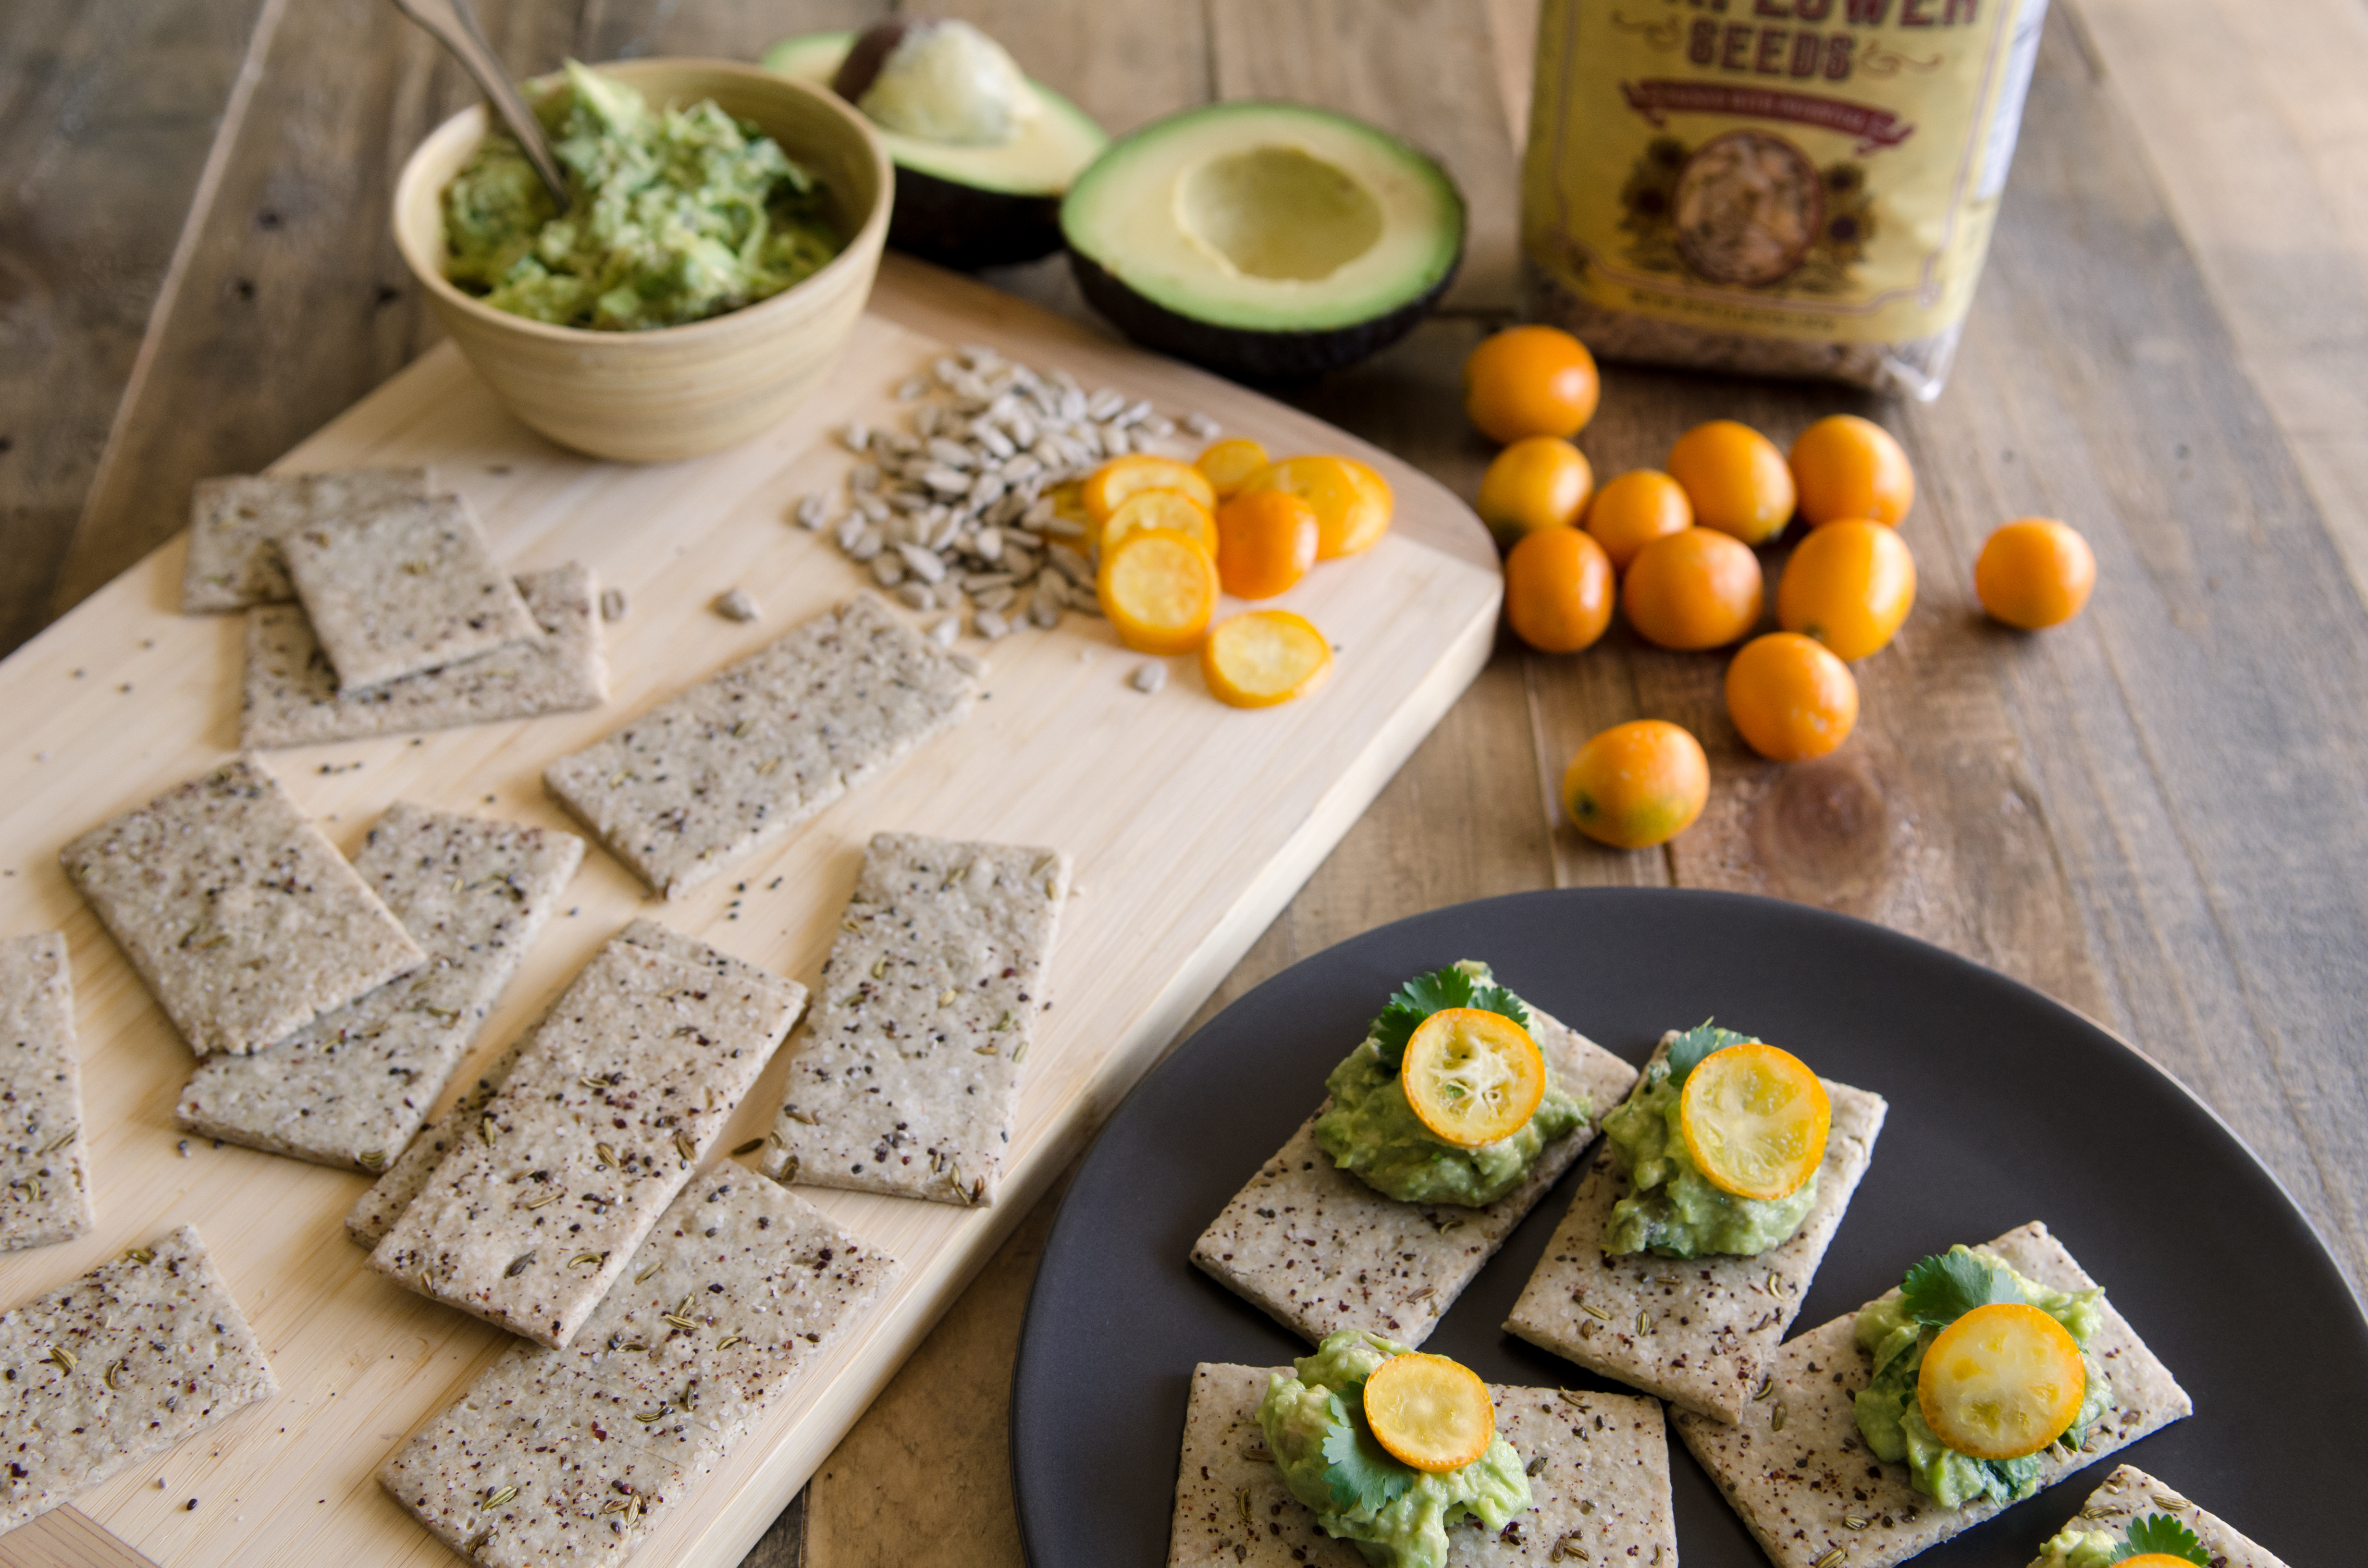 Sunflower Crackers-A healthy grain-free snack that pairs well with cheeses, dips or just on its own!  // @BobsRedMill // grain free, paleo friendly, vegan, gluten free